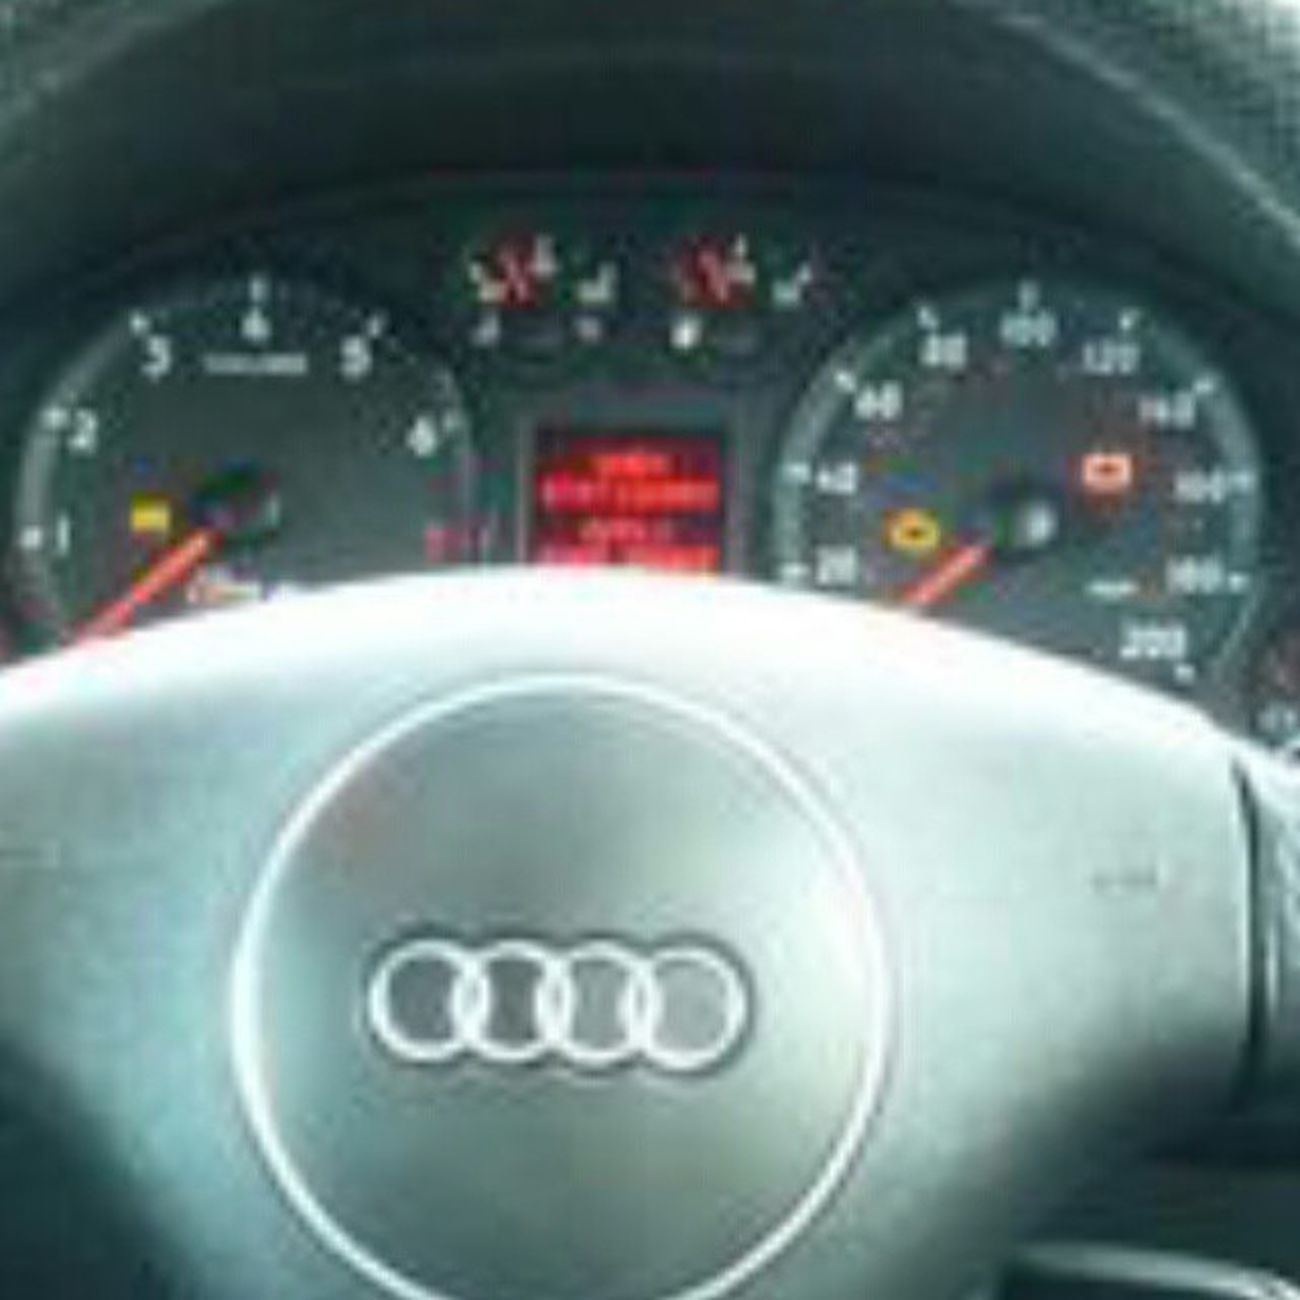 Crap old picture quality is from an old phone, but my old RS6 4.2 V8 bi turbo was just a case of a few choice mods and the car was a rocket, and if the engine is good enough for the Gumpert Apollo that was good enough for me 186 .4mph Forgemotorsport Intercoolers Aet turbos jetex apr